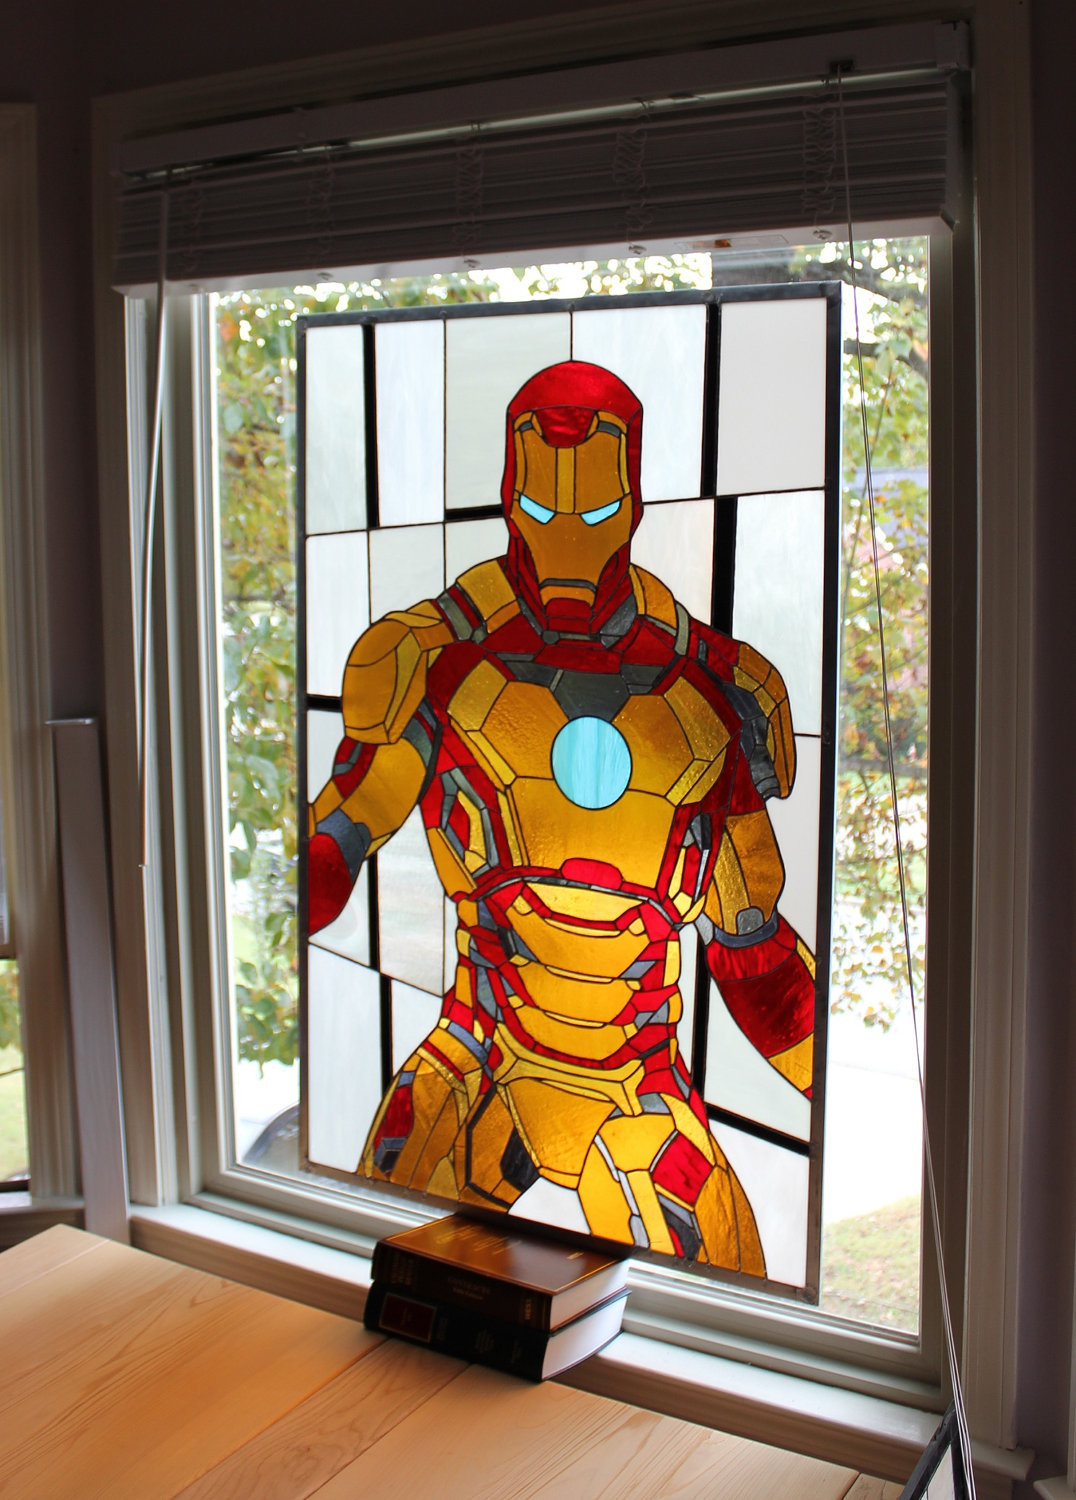 This Iron Man Armor In Stained Glass Might Be Vulnerable But It's Awesome